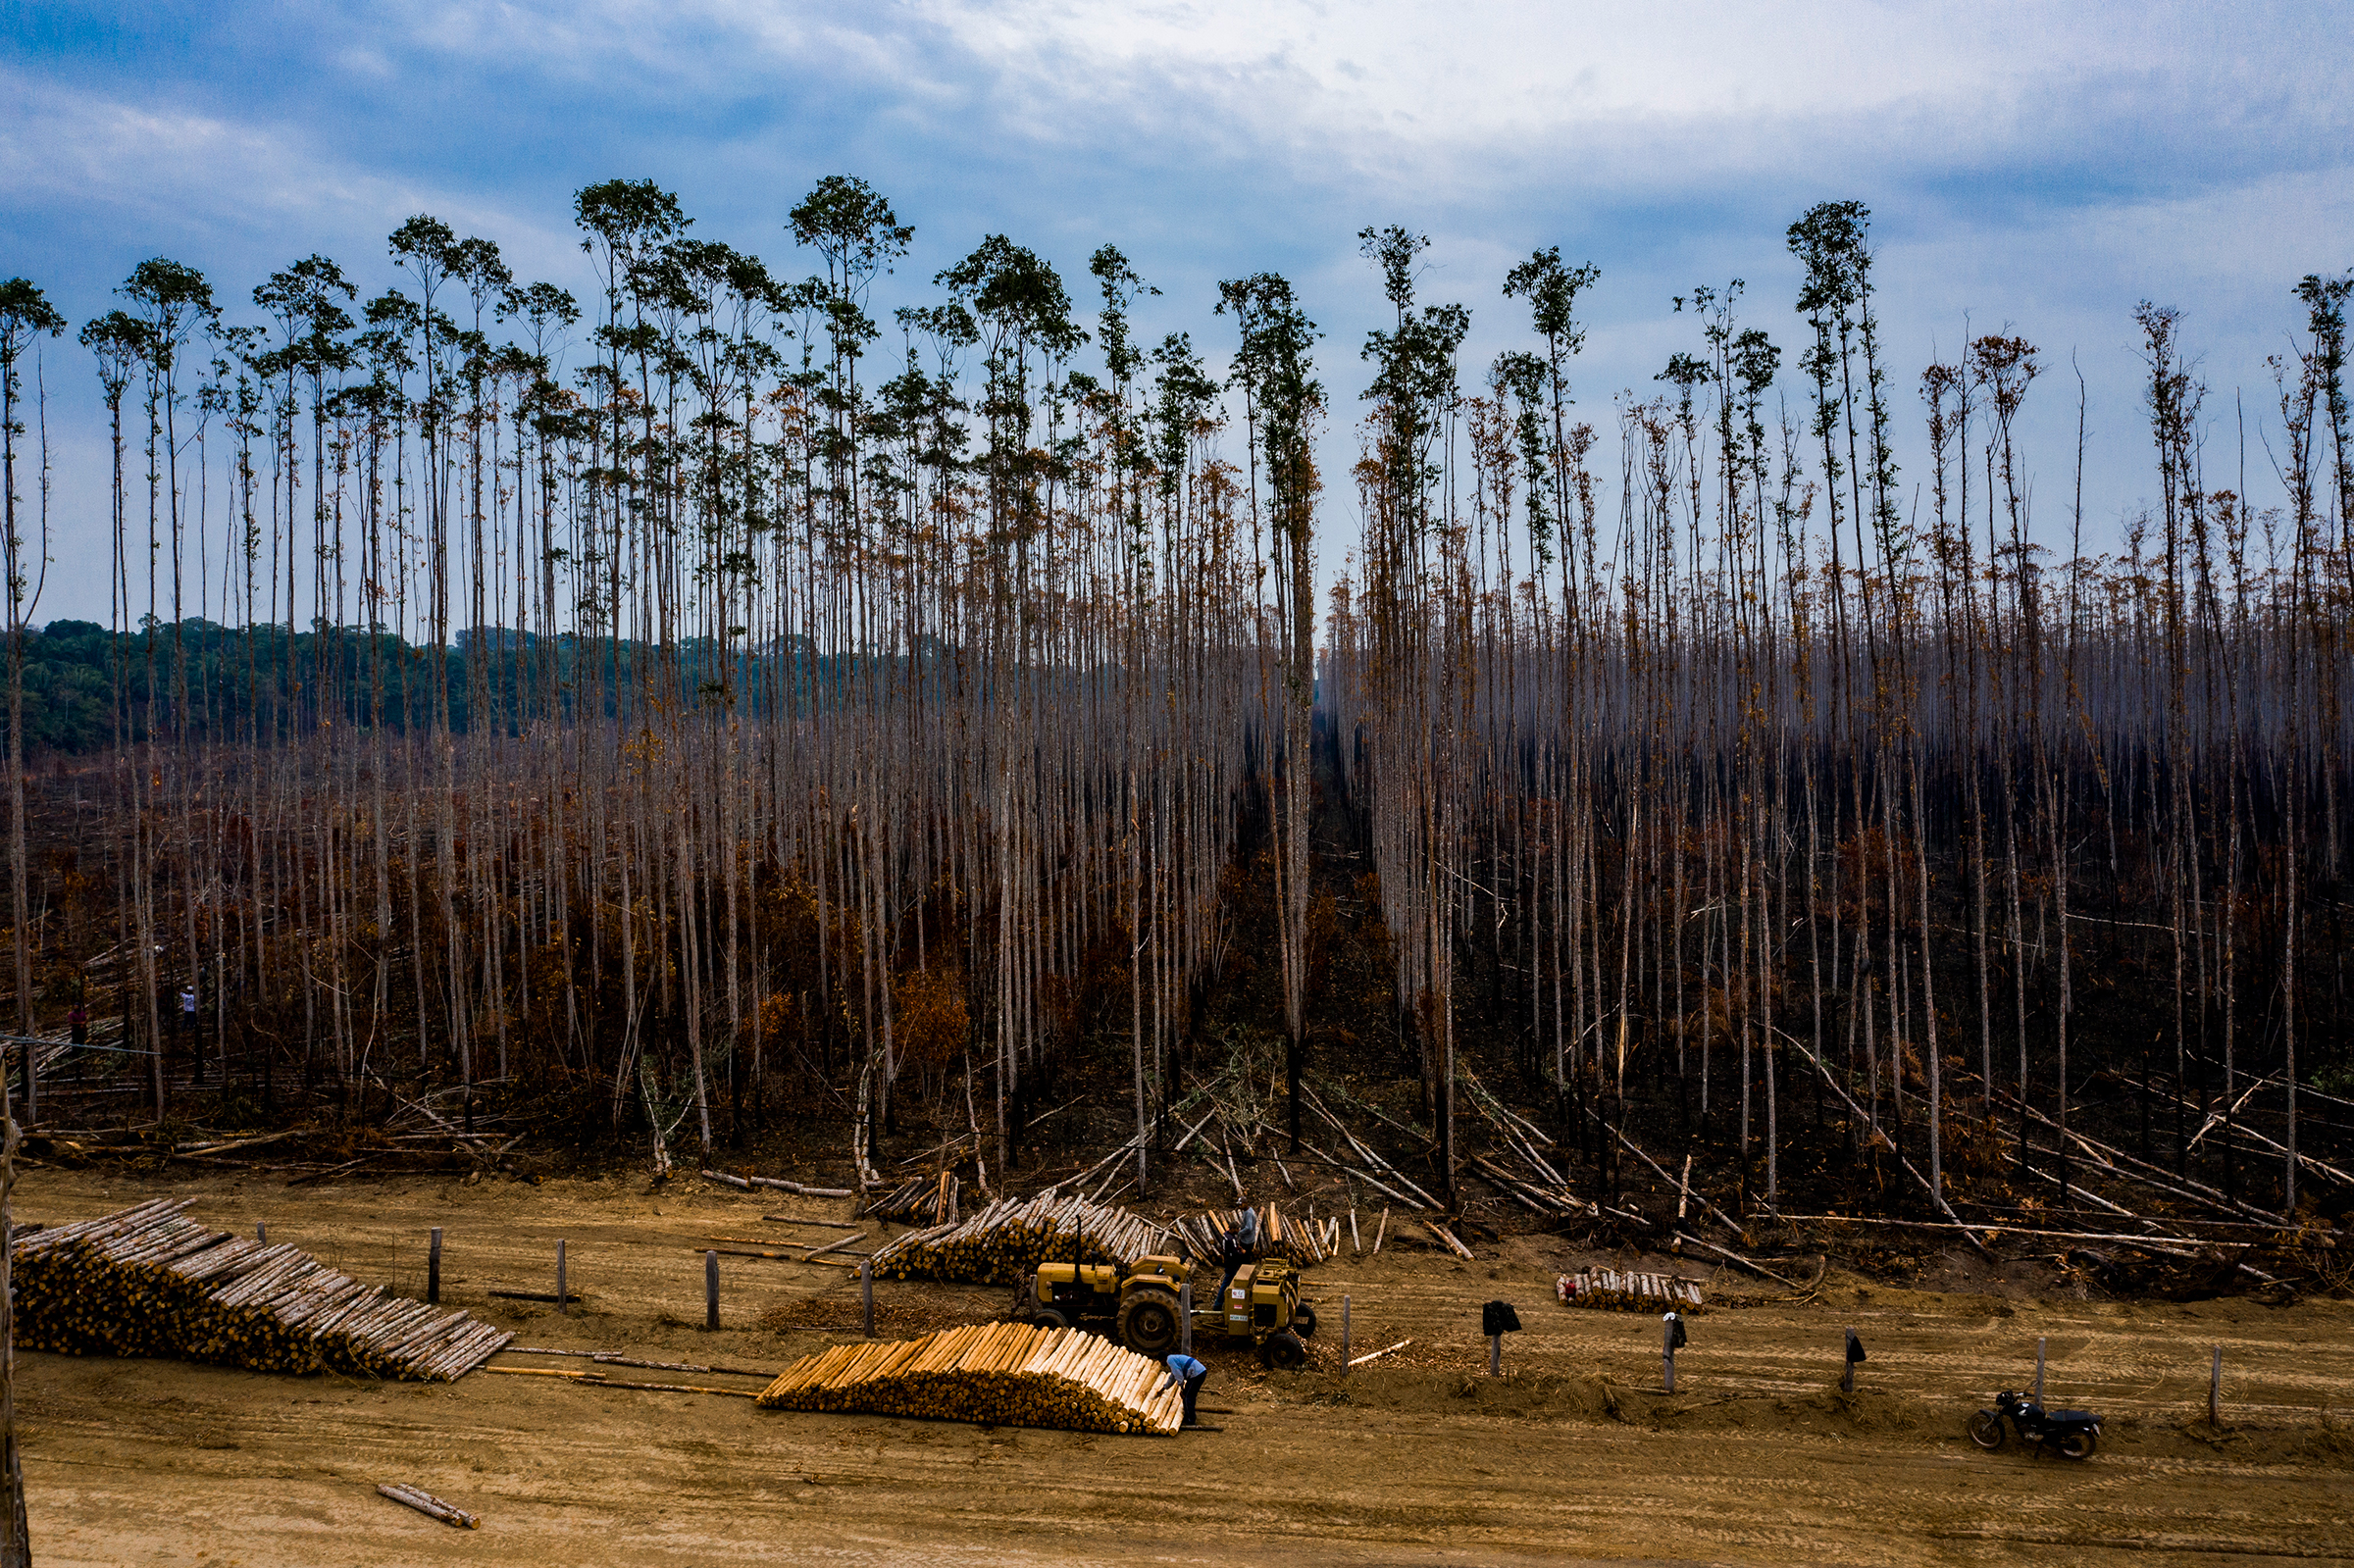 Burned trees behind piles of logs at a eucalyptus plantation in Porto Velho on Aug. 26.